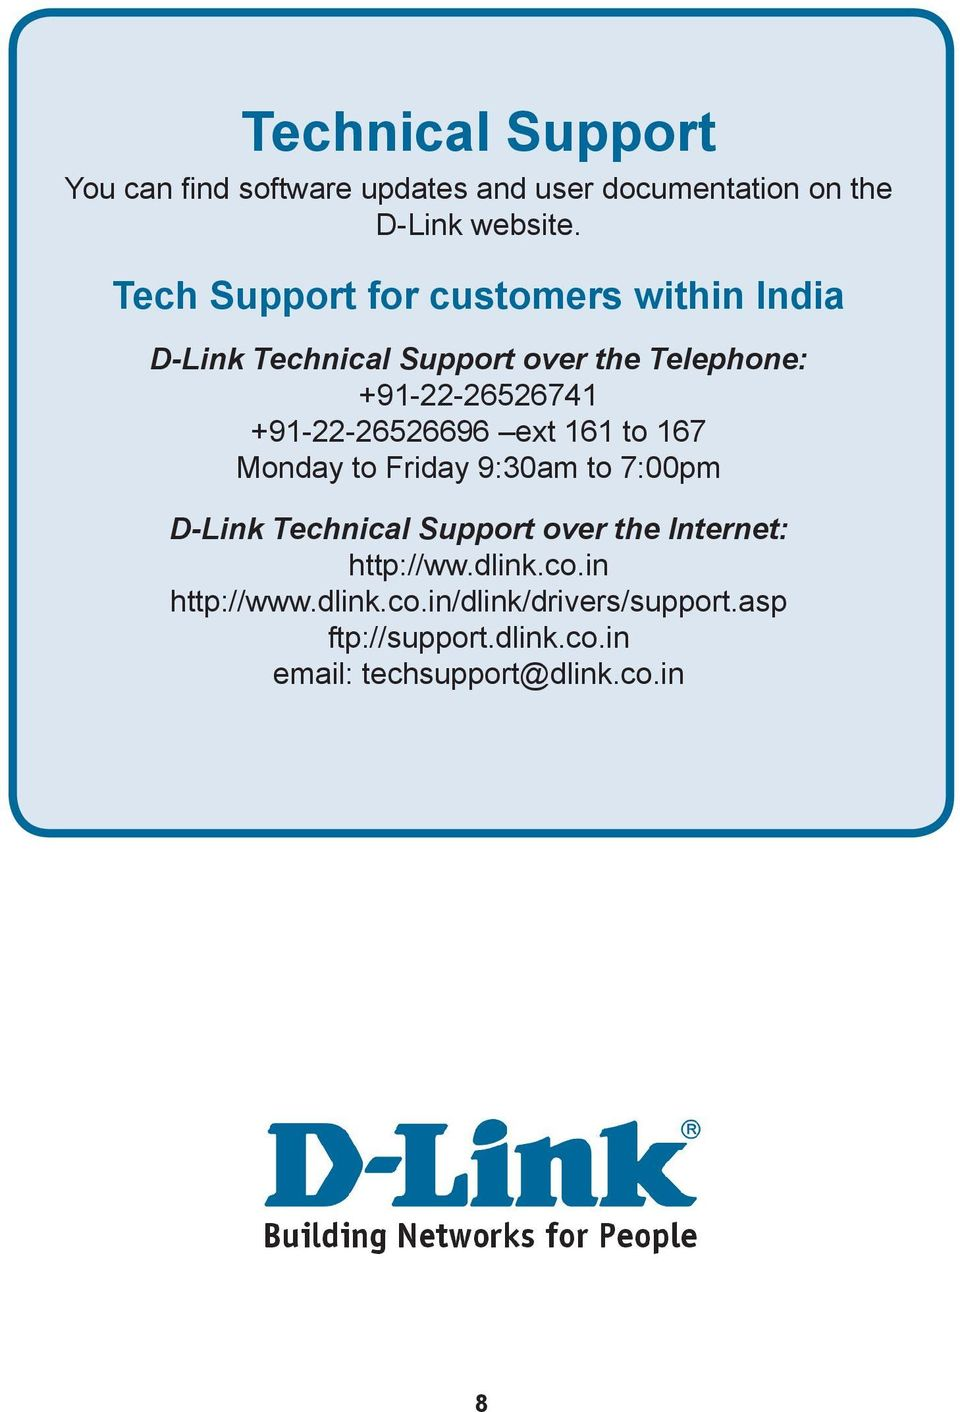 +91-22-26526696 ext 161 to 167 Monday to Friday 9:30am to 7:00pm D-Link Technical Support over the Internet: